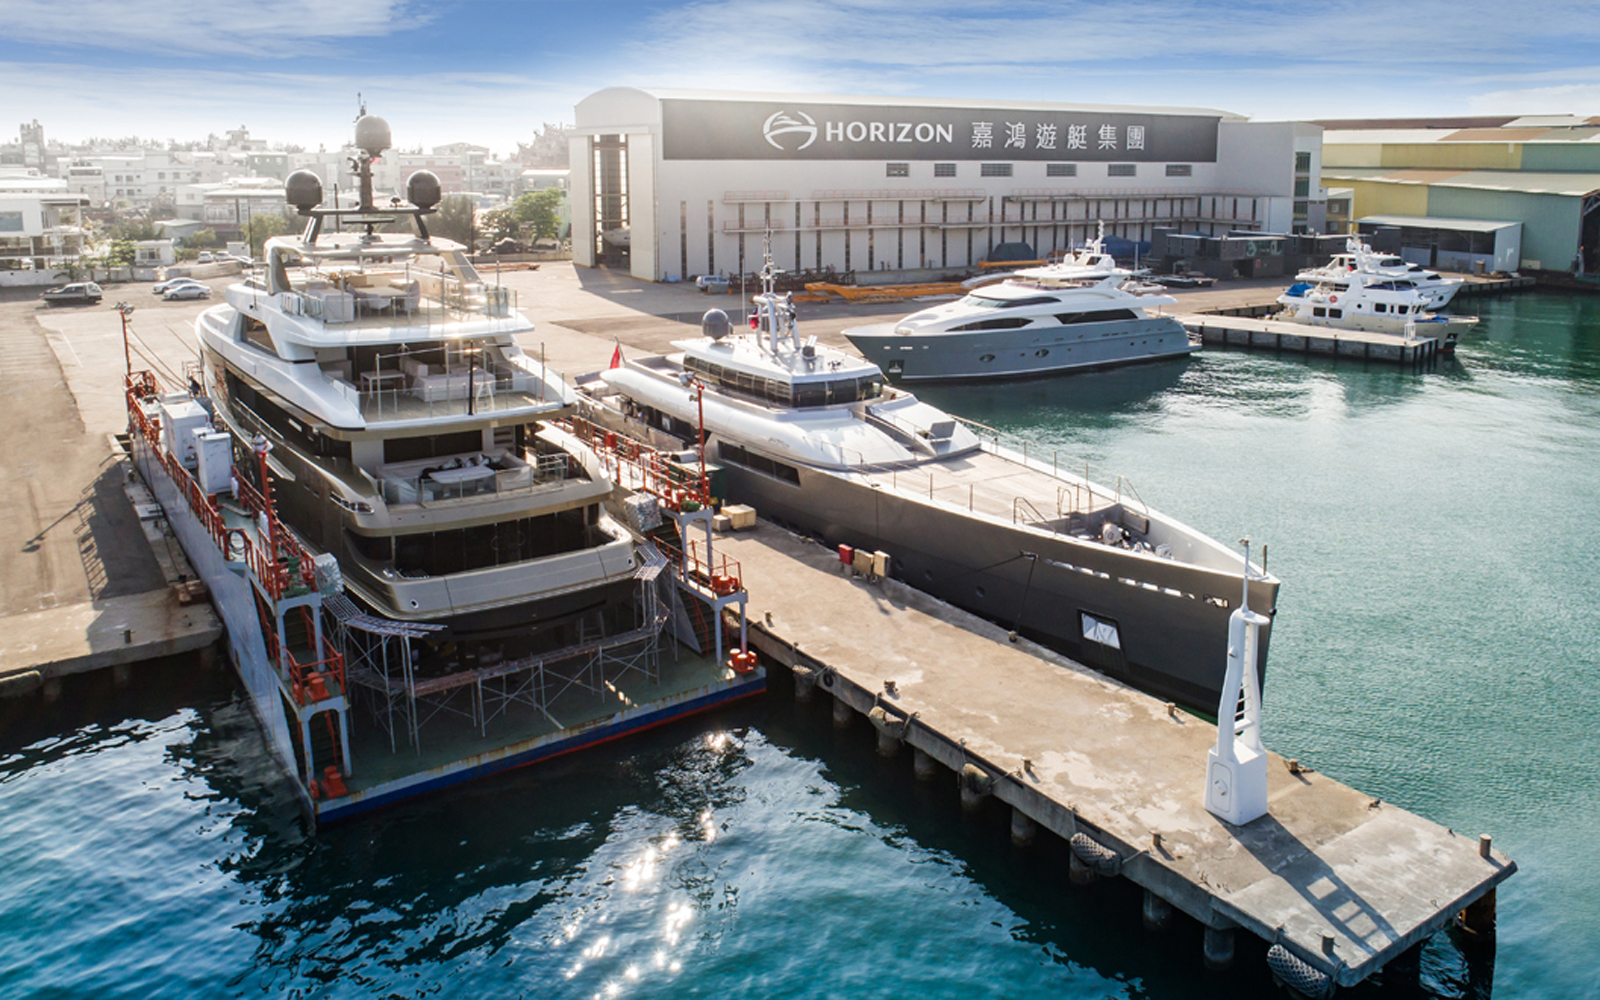 Horizon's Refit Center Attracts Megayachts